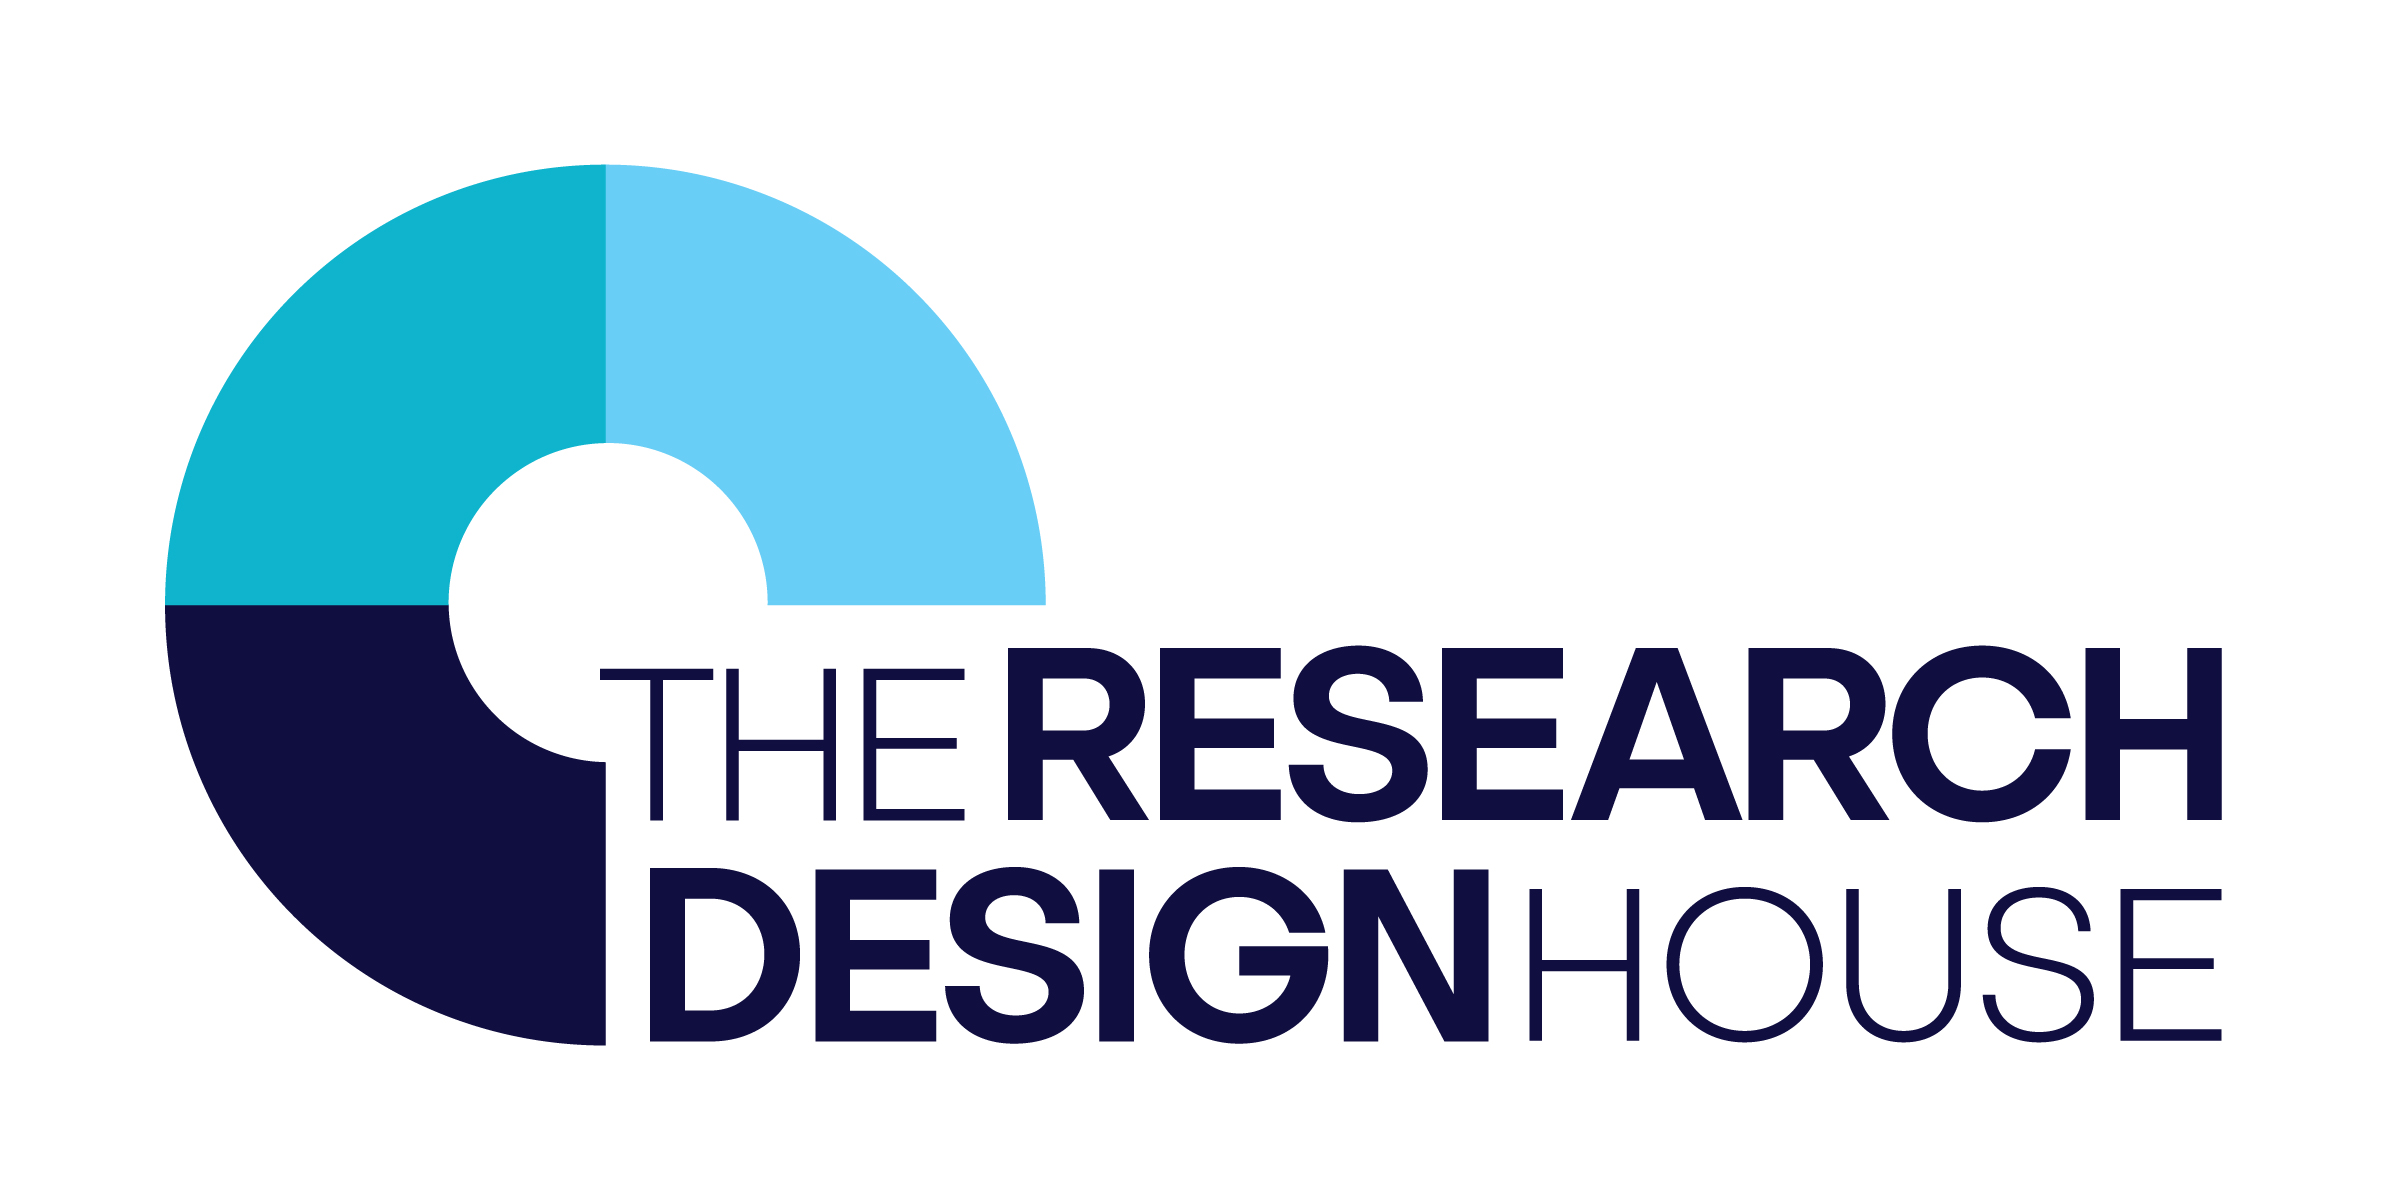 House design research - The Research Design House Logo